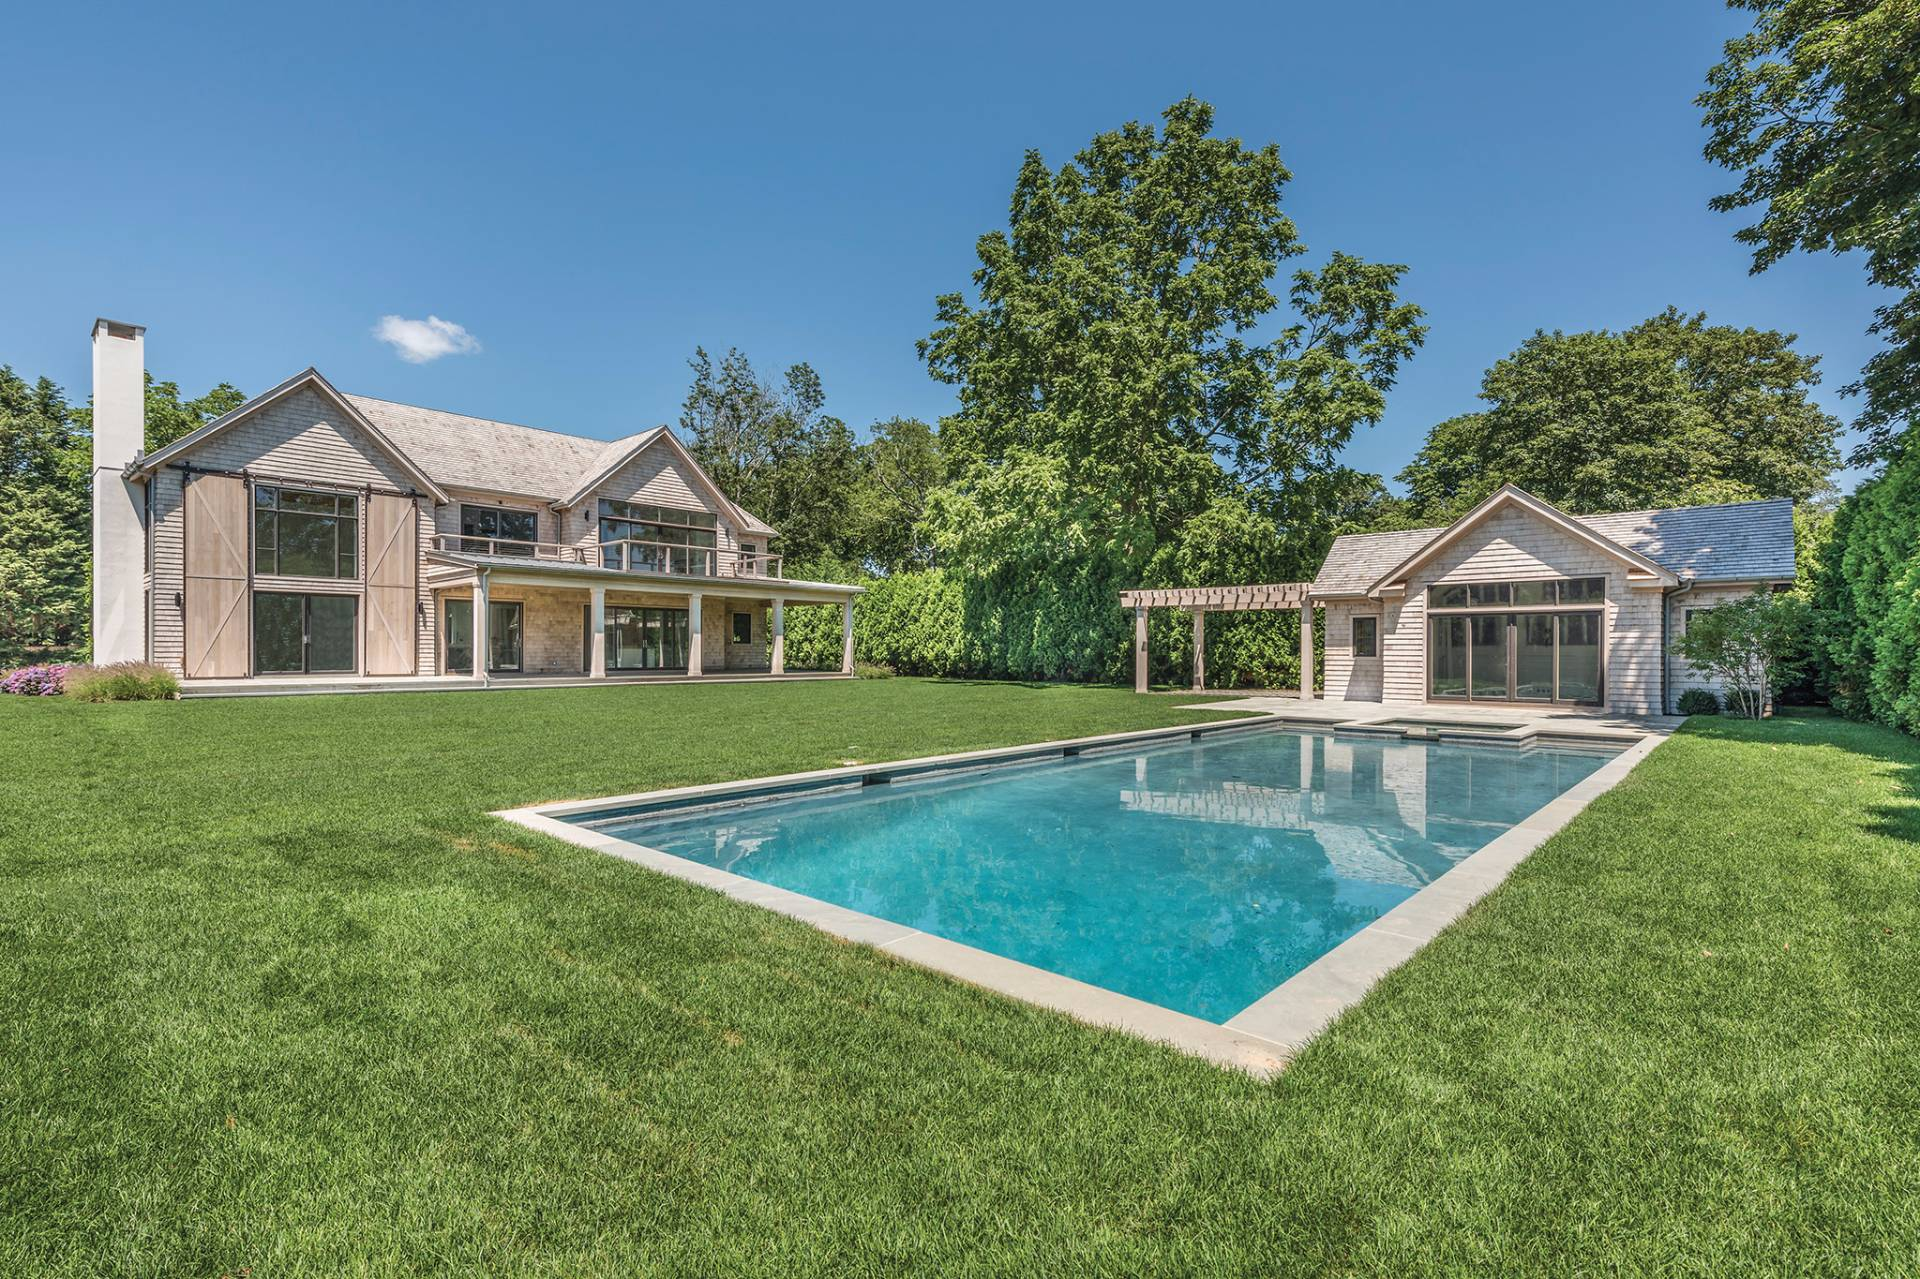 Single Family Home for Sale at Bridgehampton Village New Construction 77 Newman Avenue, Bridgehampton, New York